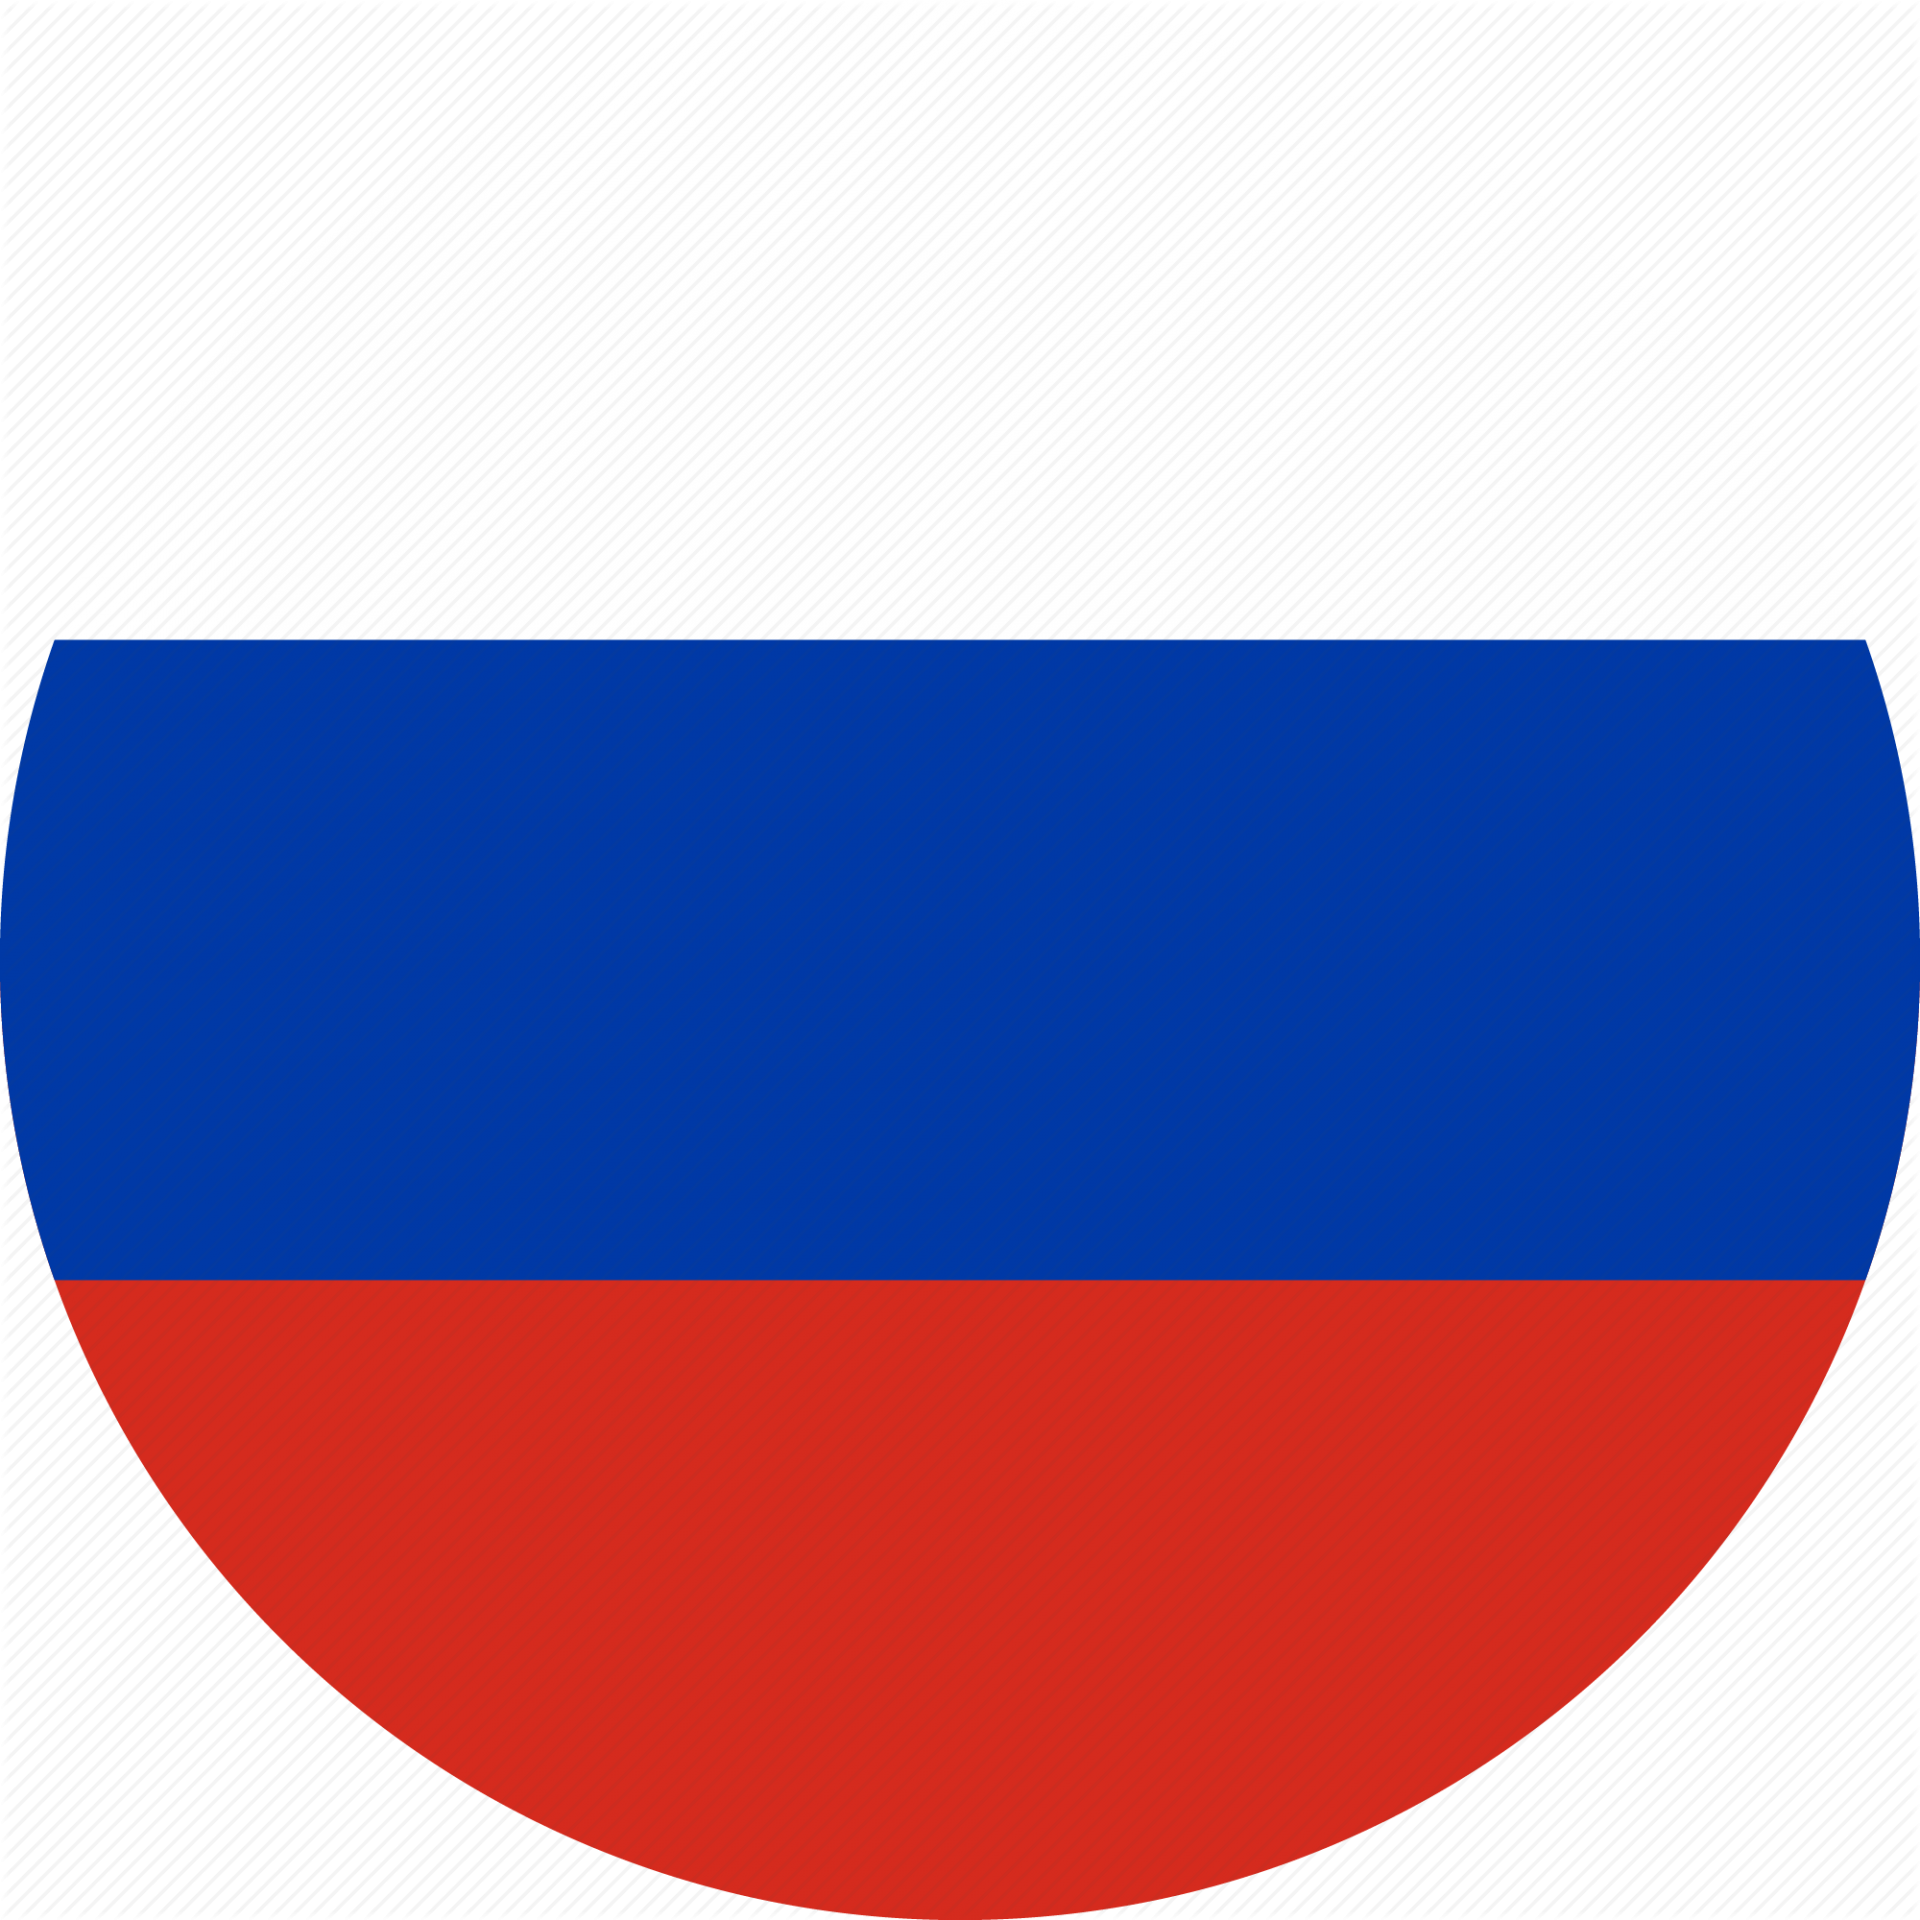 78-786133_russia-flag-png-transparent-images-covent-garden.png